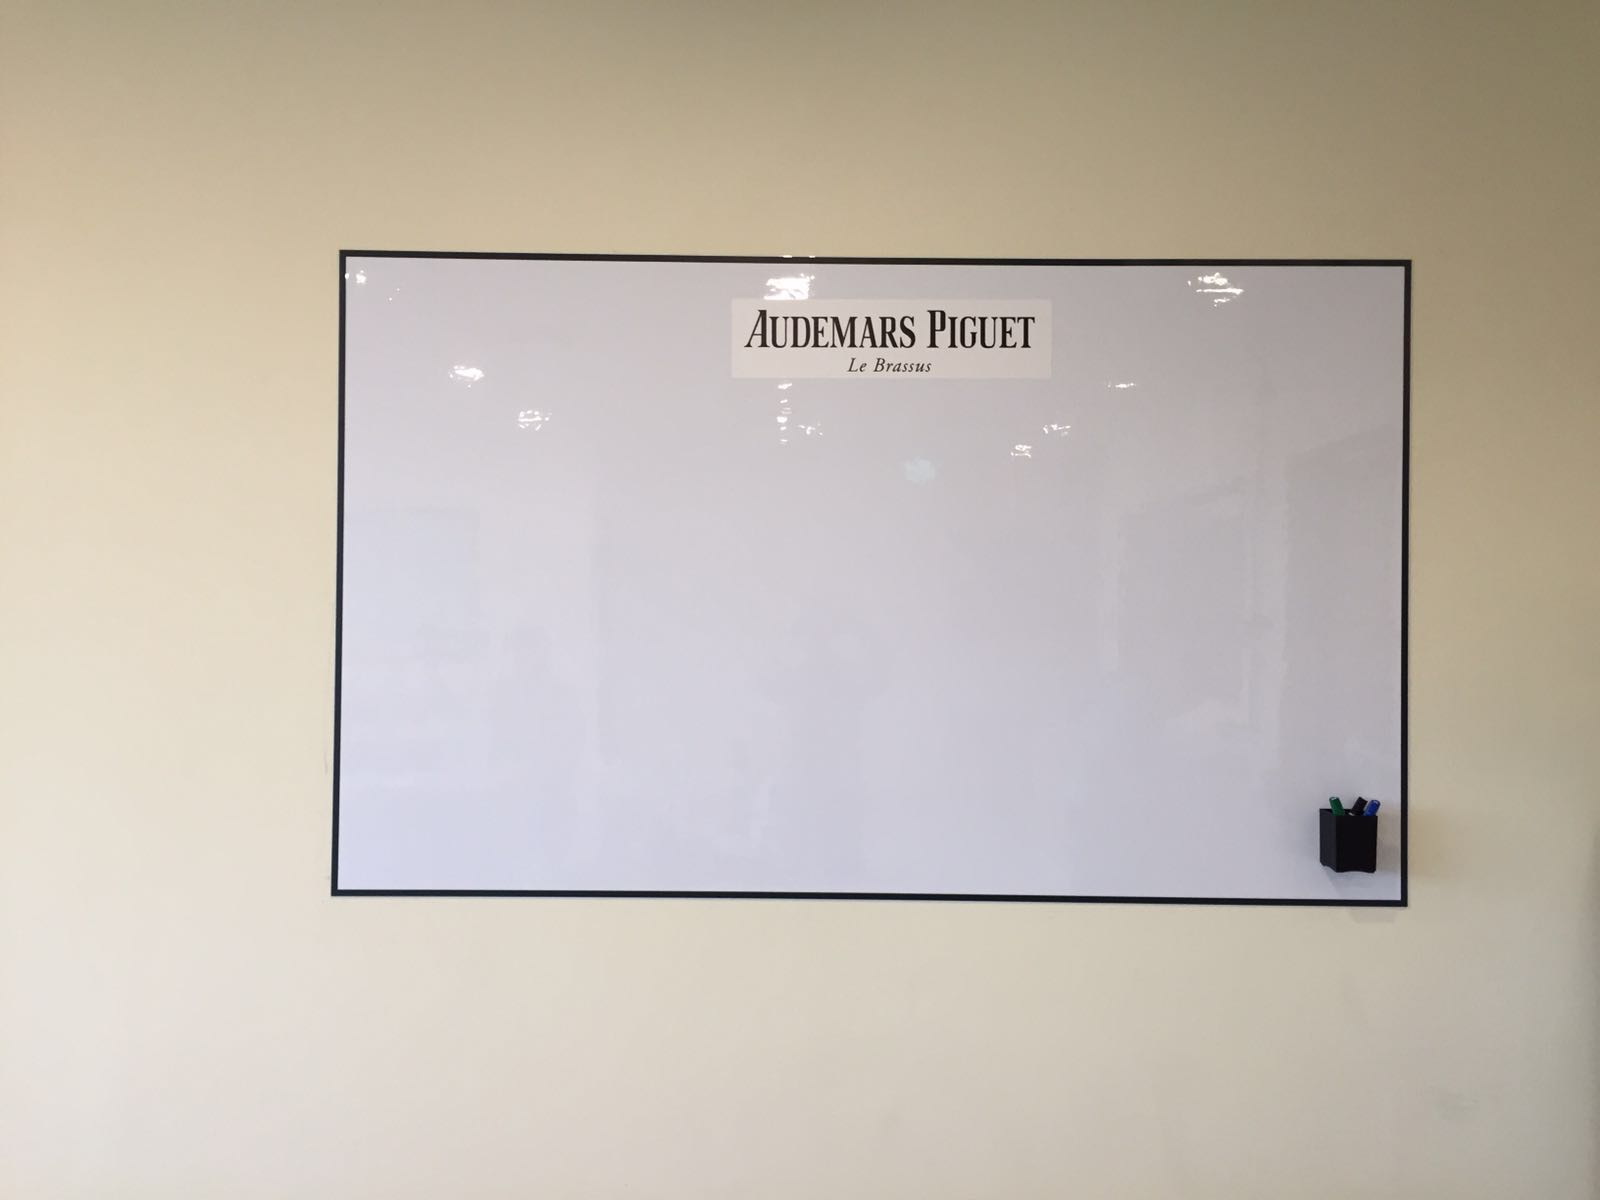 Whiteboards | Magnetic Whiteboards | Dry Erase Singapore